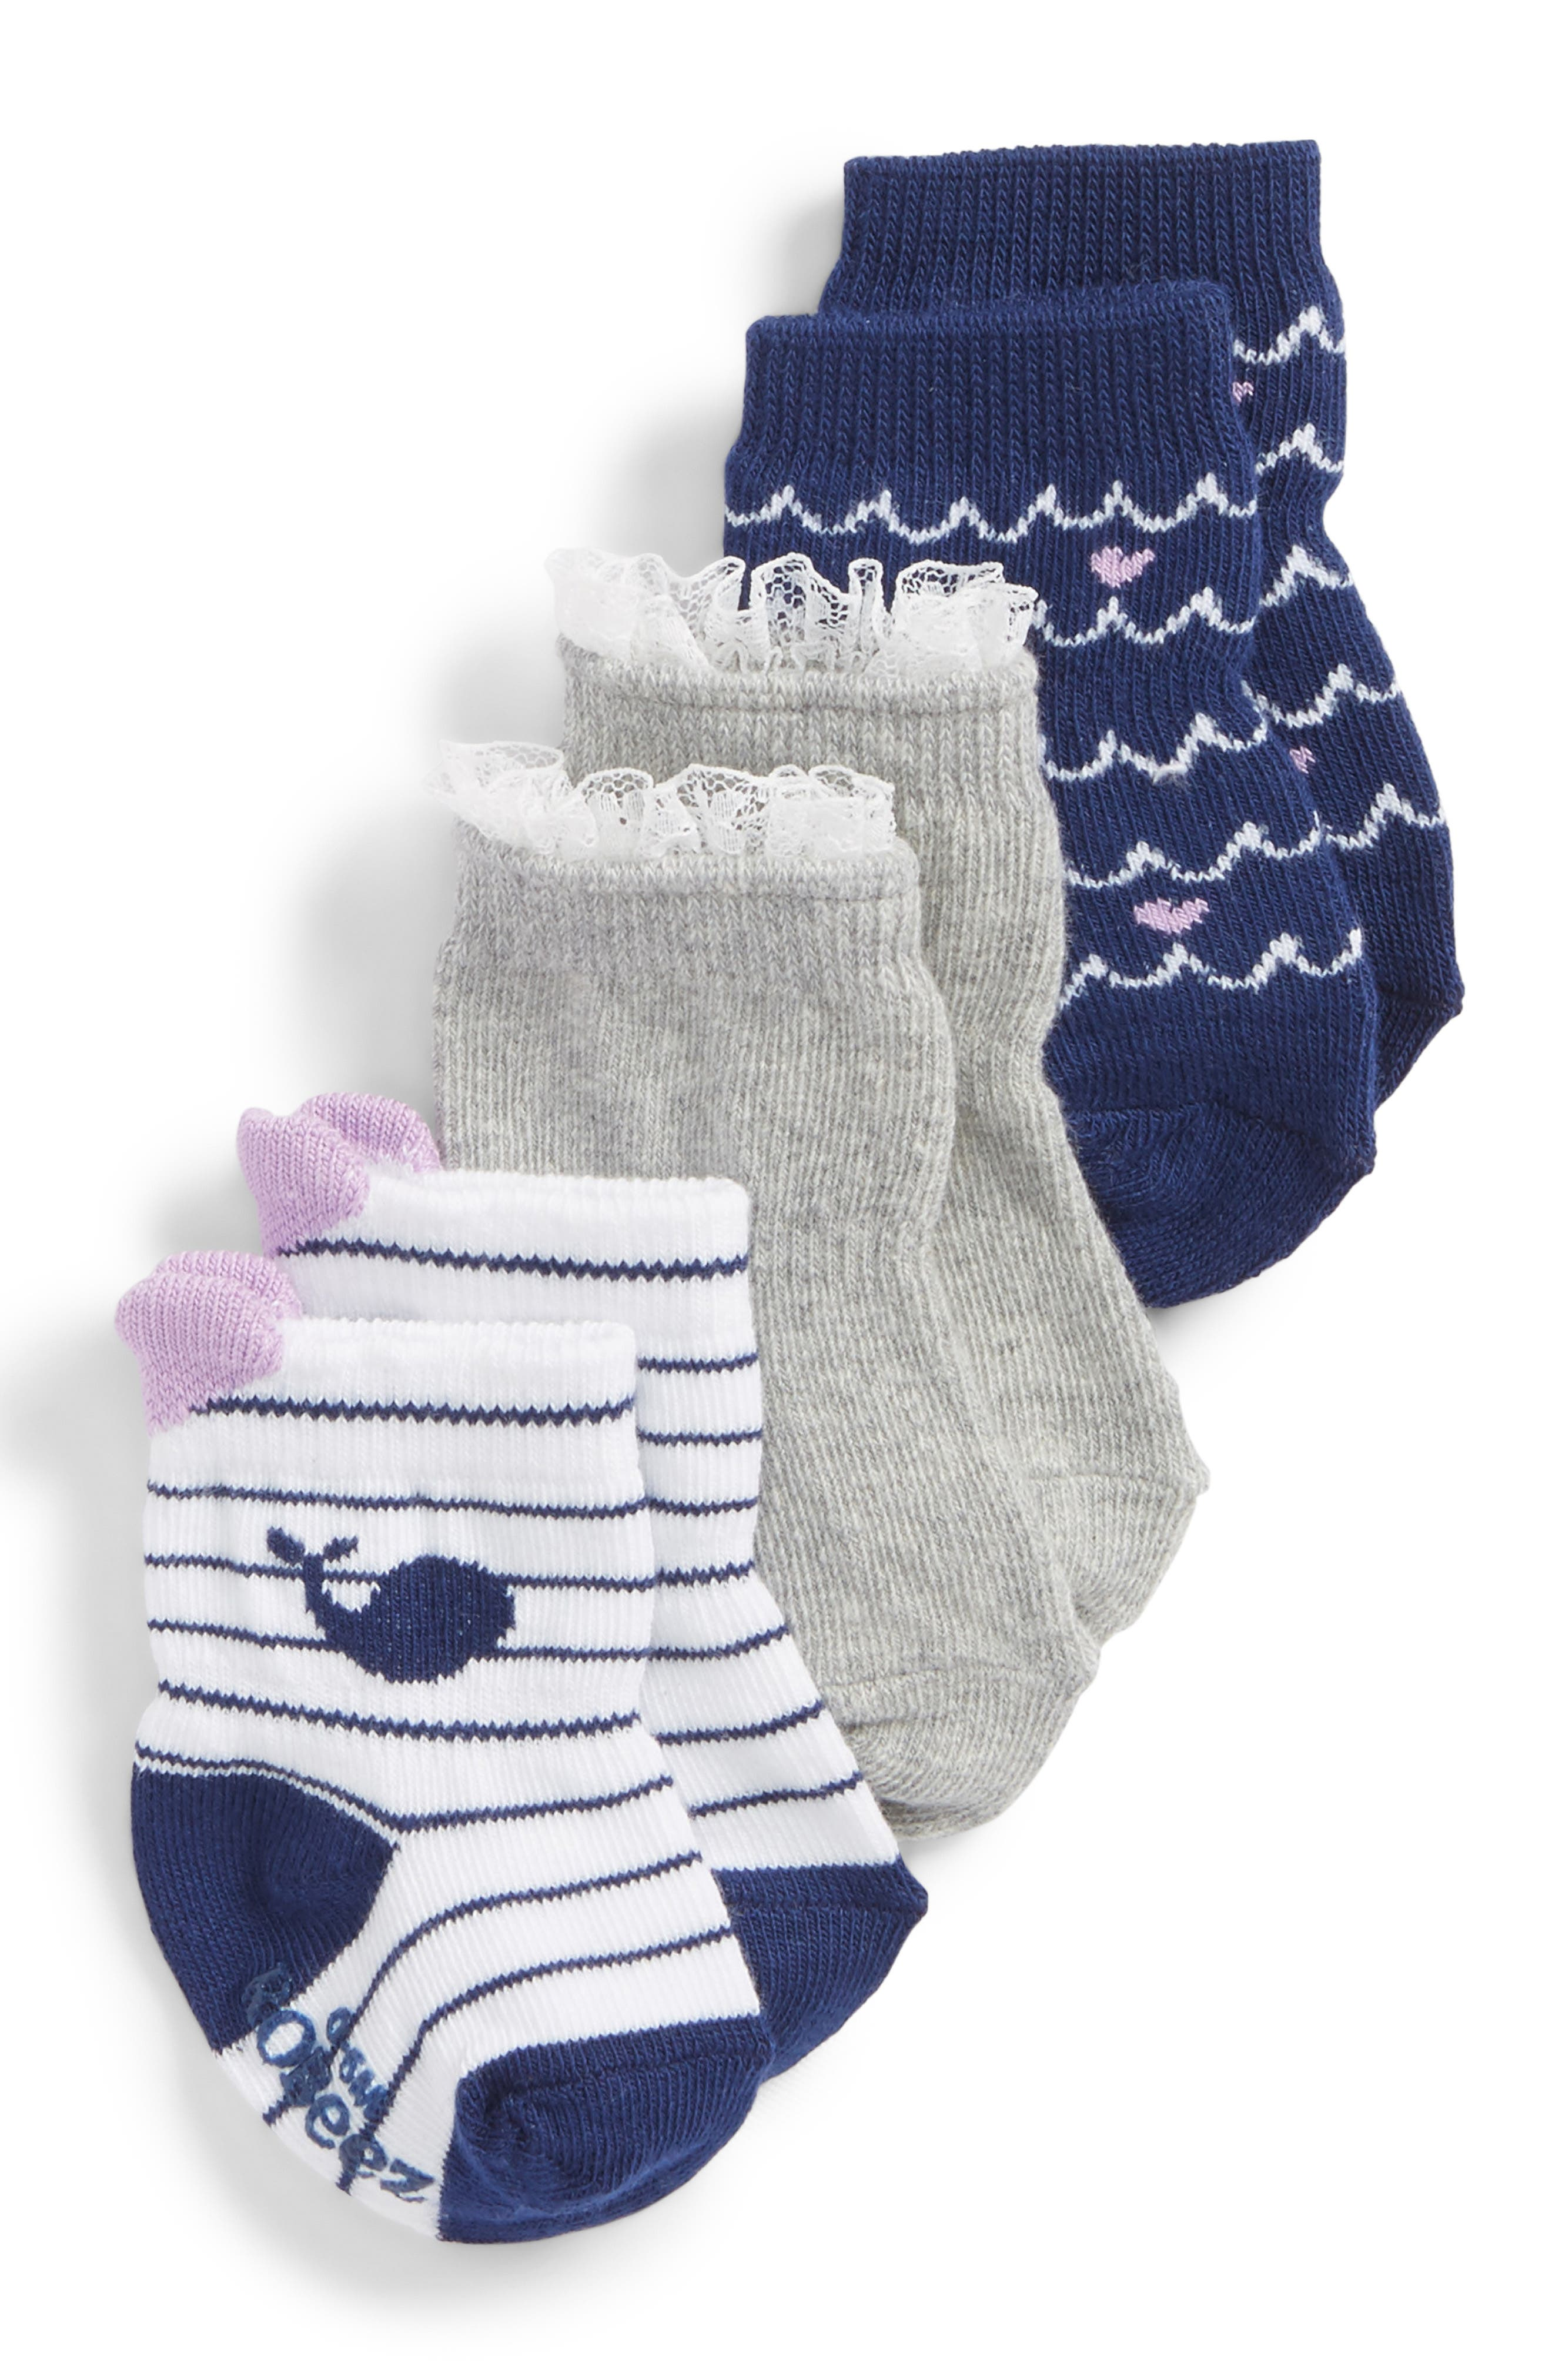 Whales 3-Pack Socks,                         Main,                         color, Navy/ White/ Grey